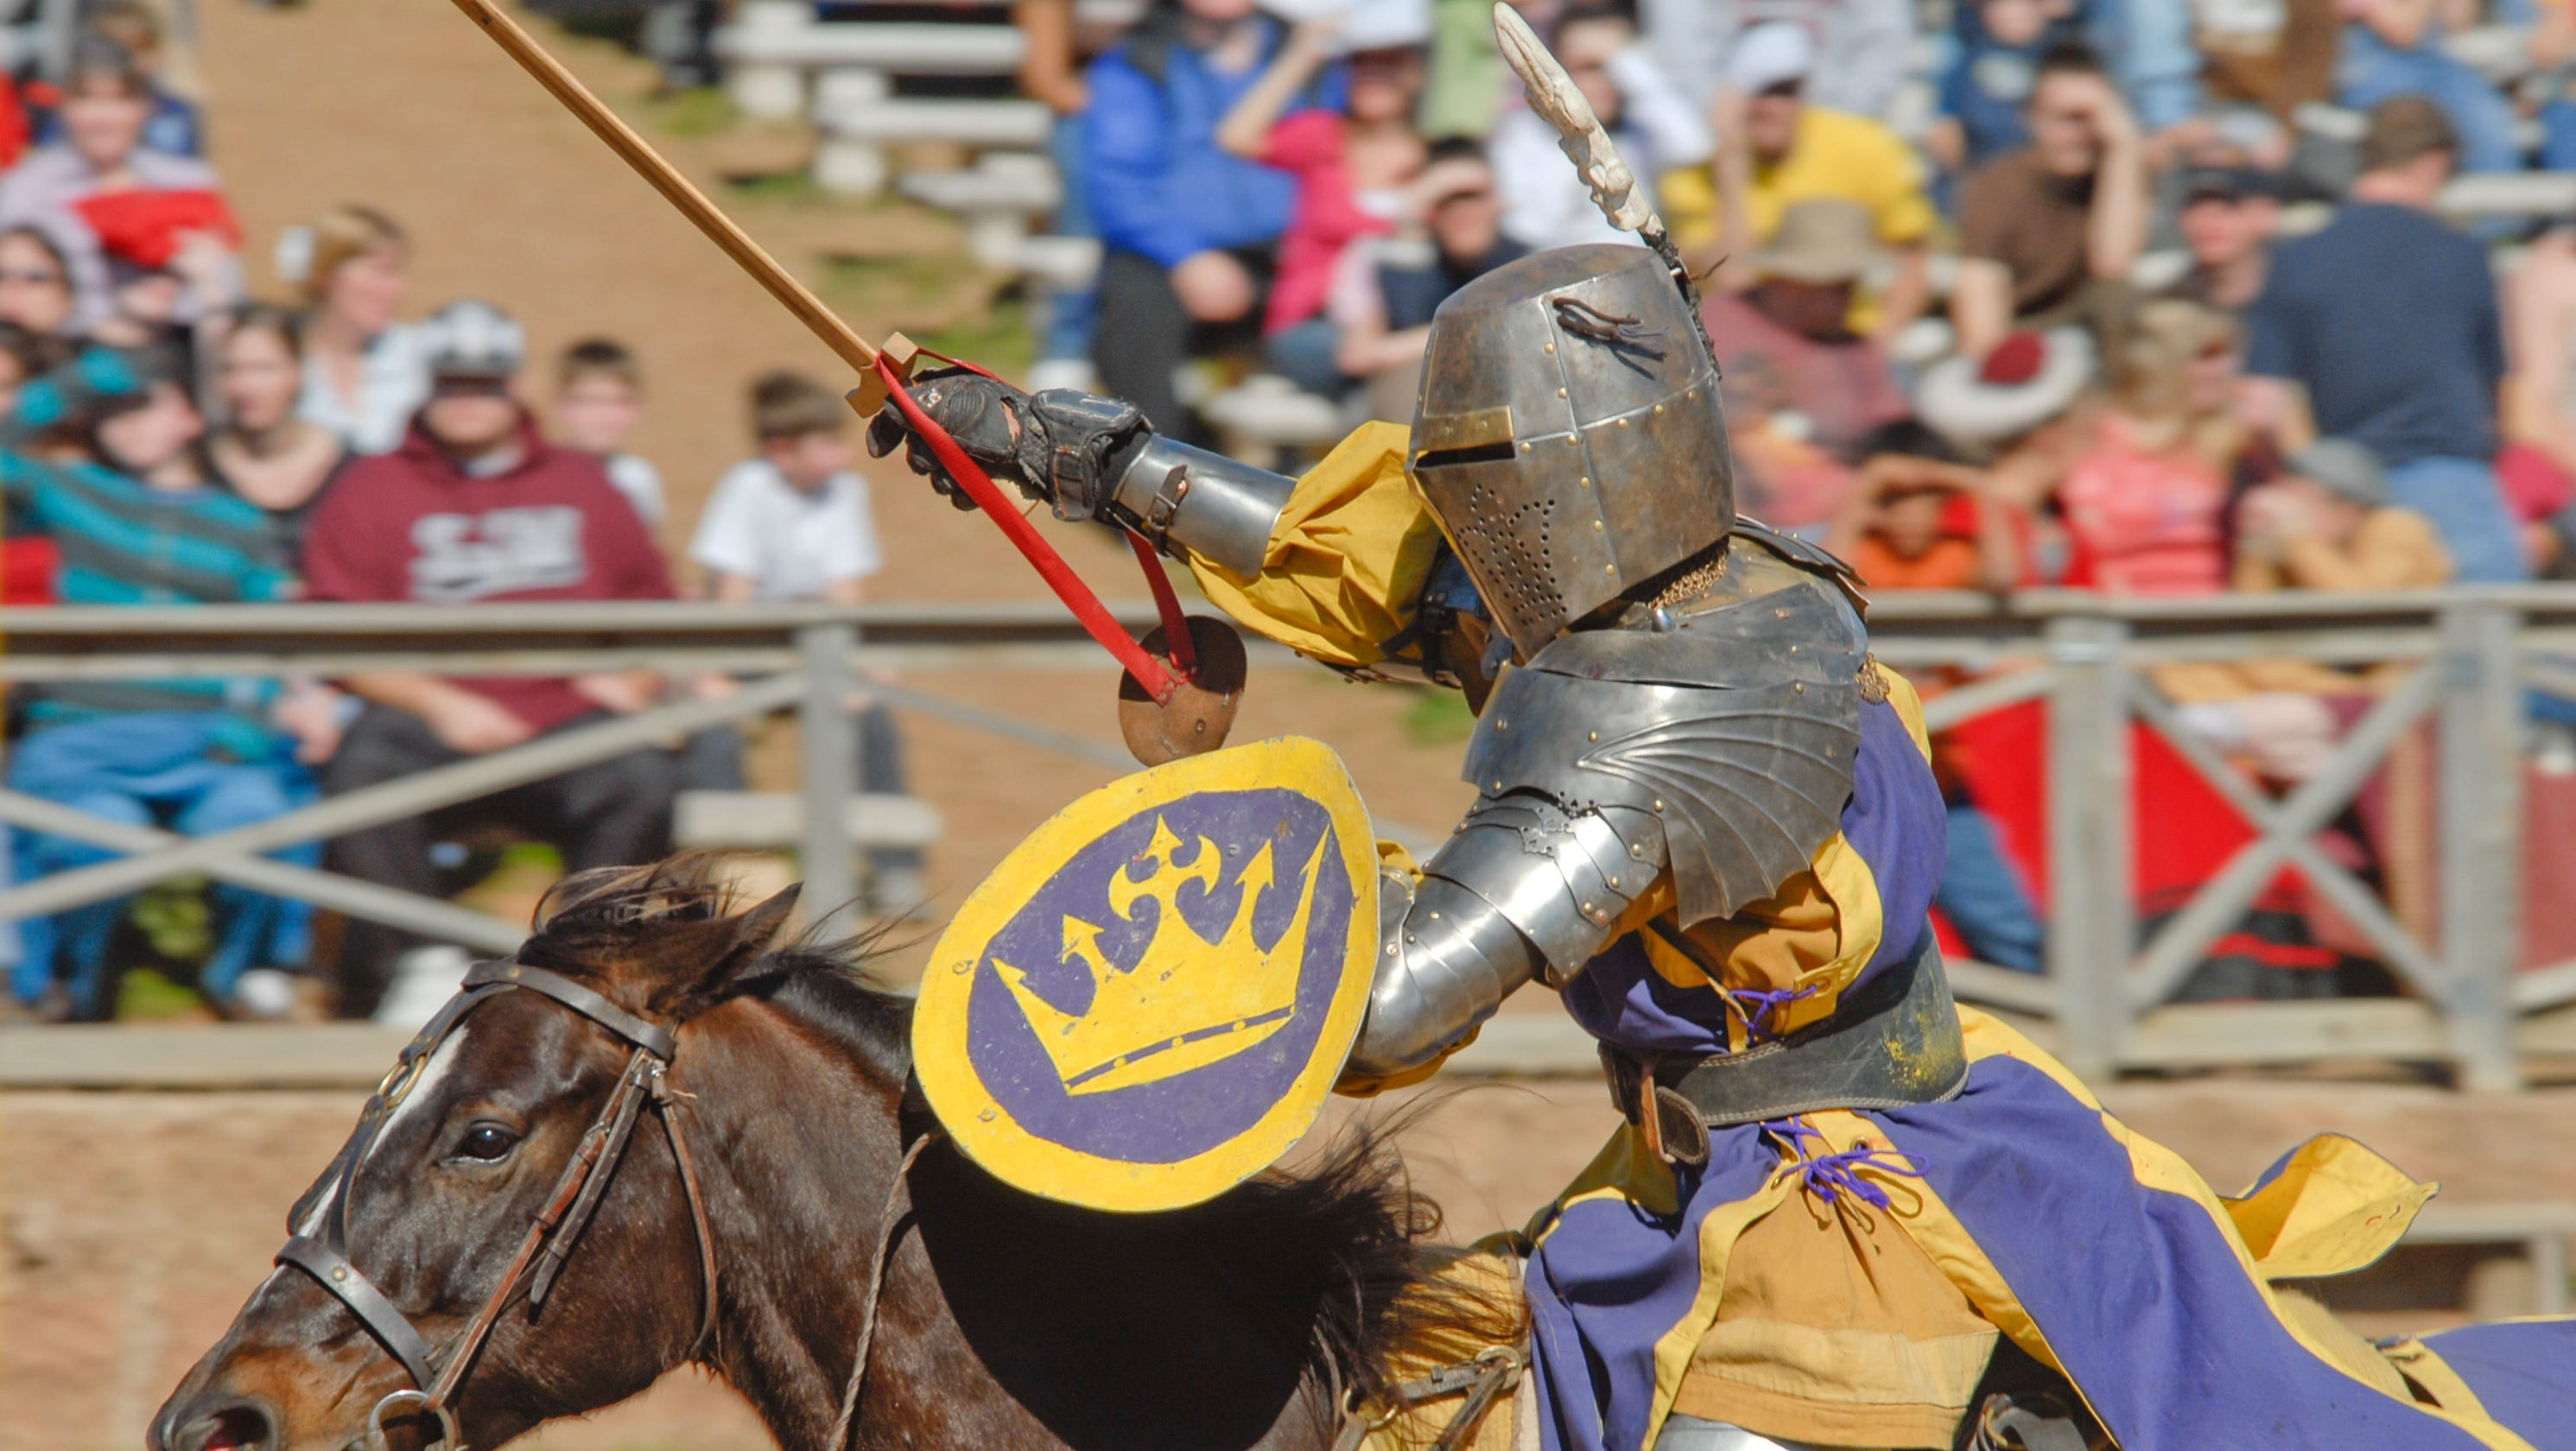 Kentucky Medieval Knight Dies After Impaling Self On Lance